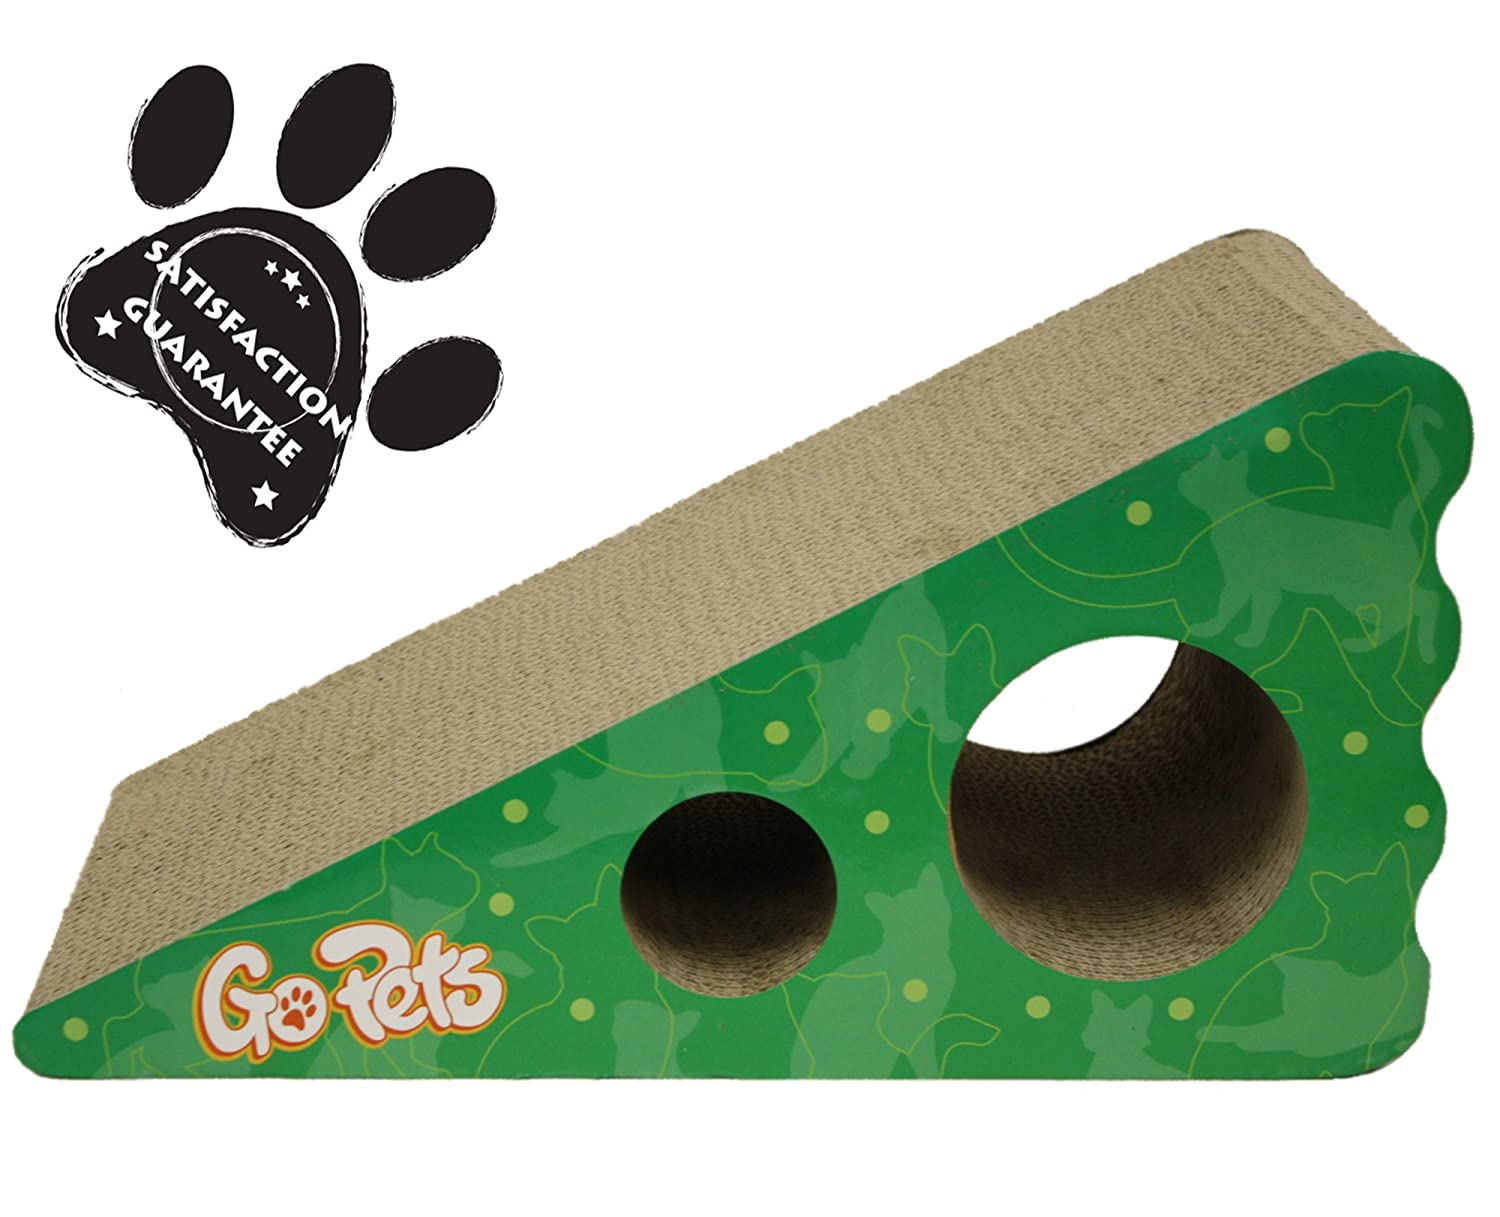 Cat Scratcher by GoPets ✮57% OFF This Week ONLY Summer Sale✮ | Reversible Wedge Last 2X as Long | Includes ✮FREE✮ Catnip | Natural Incline Improves & Maintains Claw Health | Satisfaction Guarantee